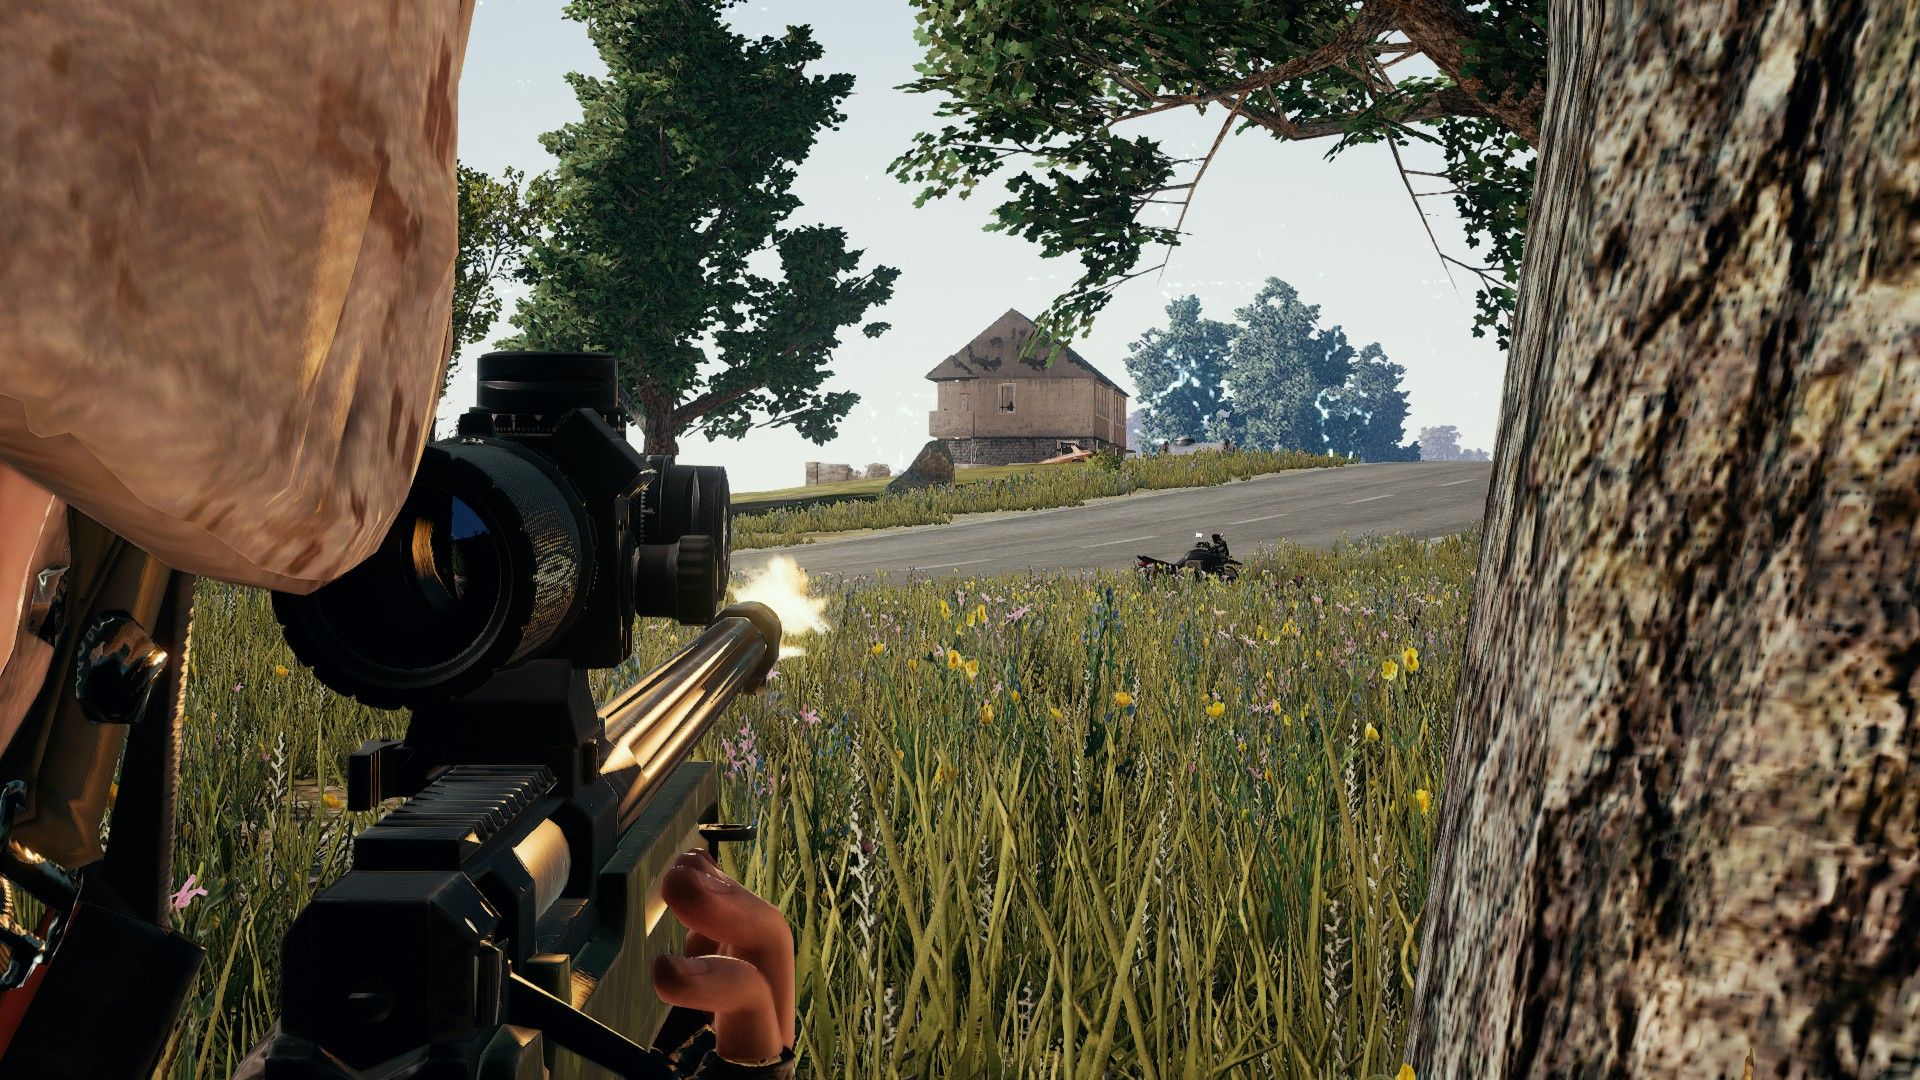 Pubg Sniper Wallpapers Top Free Pubg Sniper Backgrounds